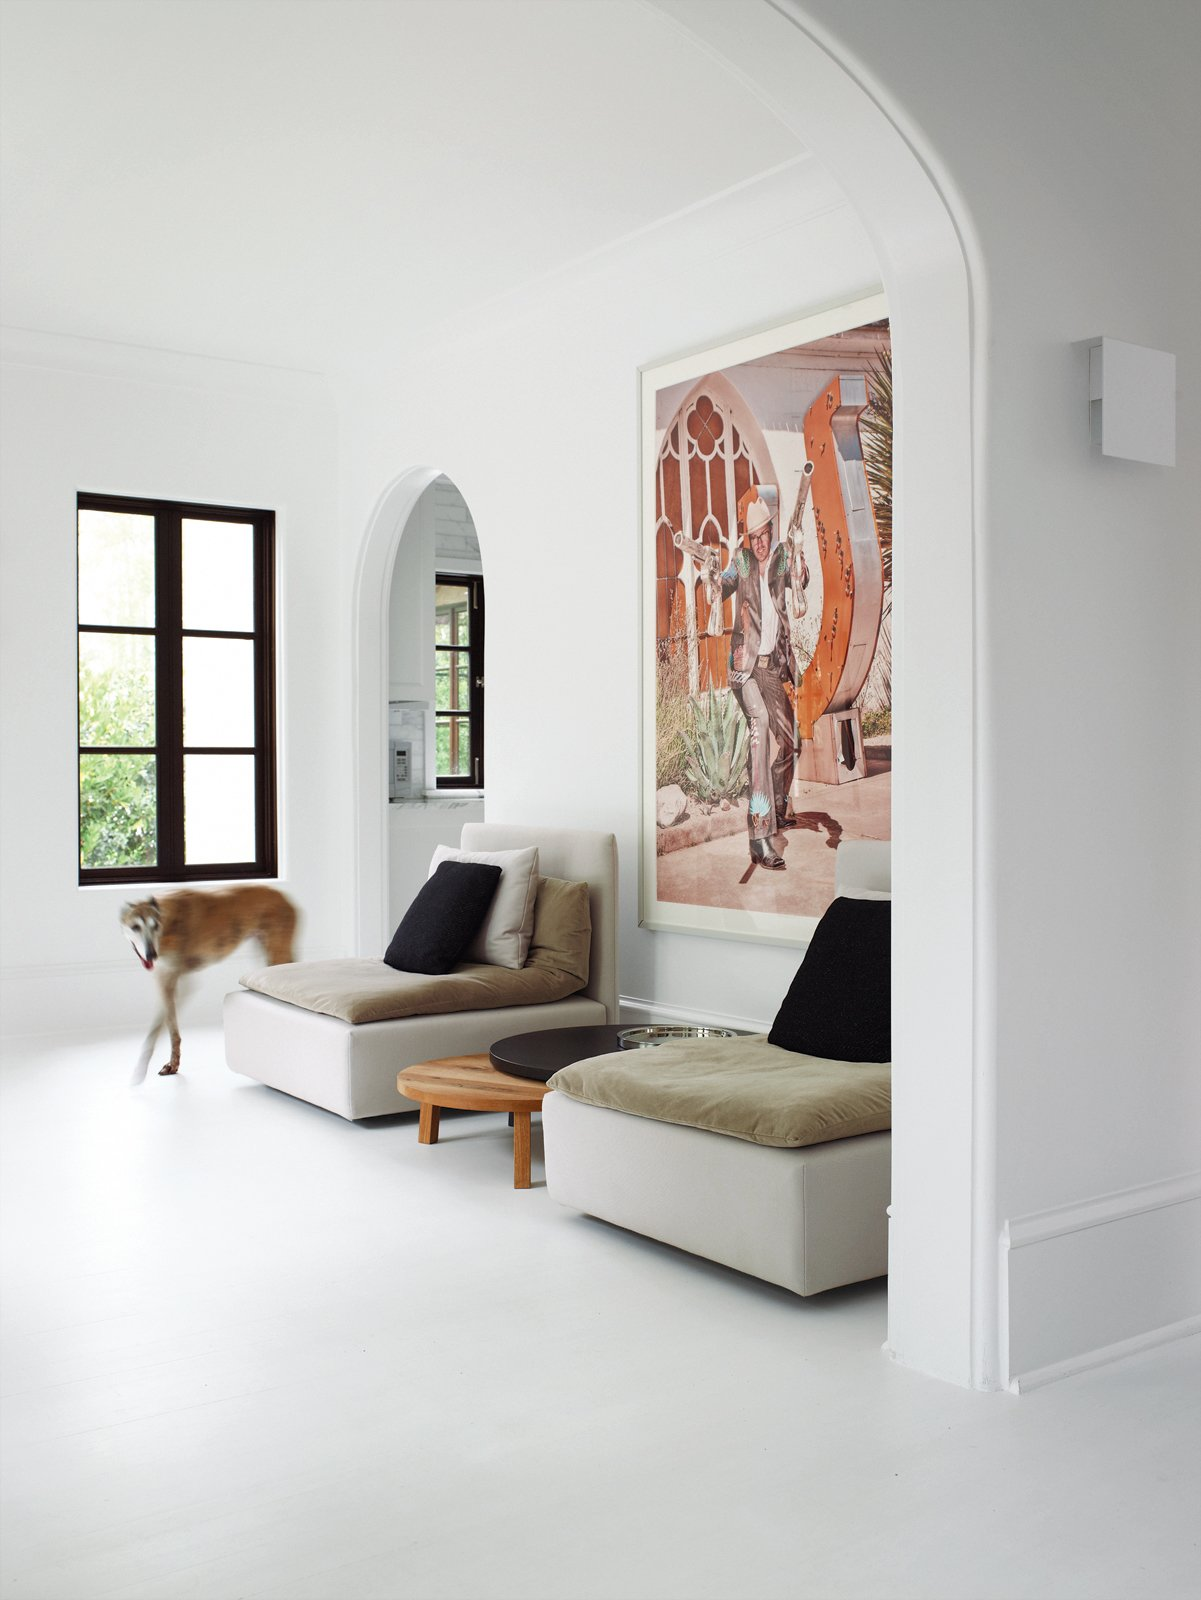 """Living Room, Chair, Coffee Tables, and Painted Wood Floor Two pieces from E15's Shiraz sofa flank   the company's wooden Leila side tables.   Hill chose to use flat paint in Benjamin Moore's Decorators White throughout the home   because it emphasizes the chalkiness of the plaster walls, making them """"look almost like slate."""" The sconce shown in the foreground—David Chipperfield's Corrubedo design for   FontanaArte—gives off a soft glow and   replaces the dozens of paper-lampshade   wall fixtures the owners found in the house when they bought it. Stewart Cohen's   zany photograph of a gun-toting Marfa   resident encapsulates Barbara Hill's offbeat brand of decorating: bright and minimal,   yet darkly humorous.  Photos from A Designer Brings Her Bold Brand of Texas Modern to this Atlanta Family Home"""